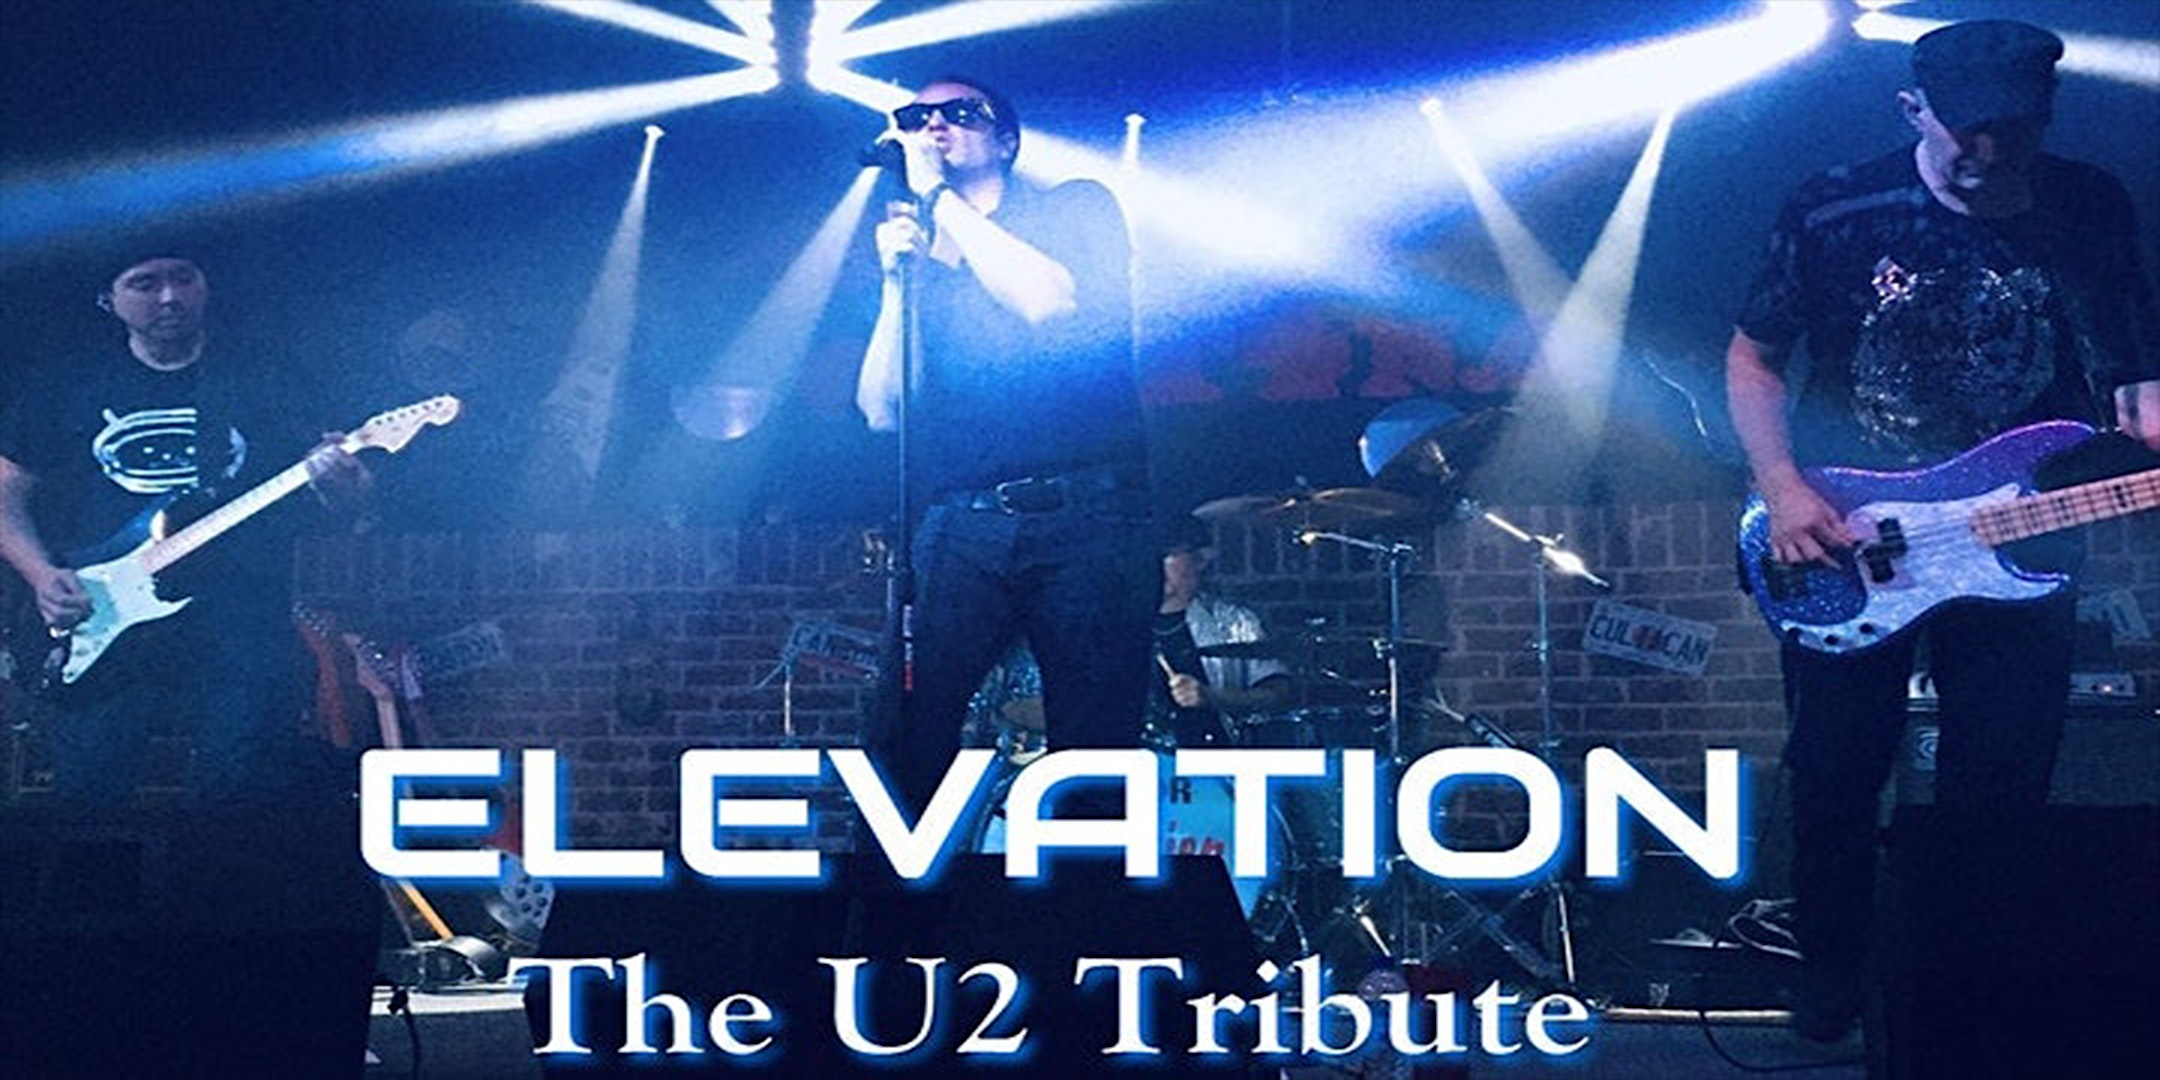 Celebrate St. Patrick's Day with Elevation – The U2 Tribute